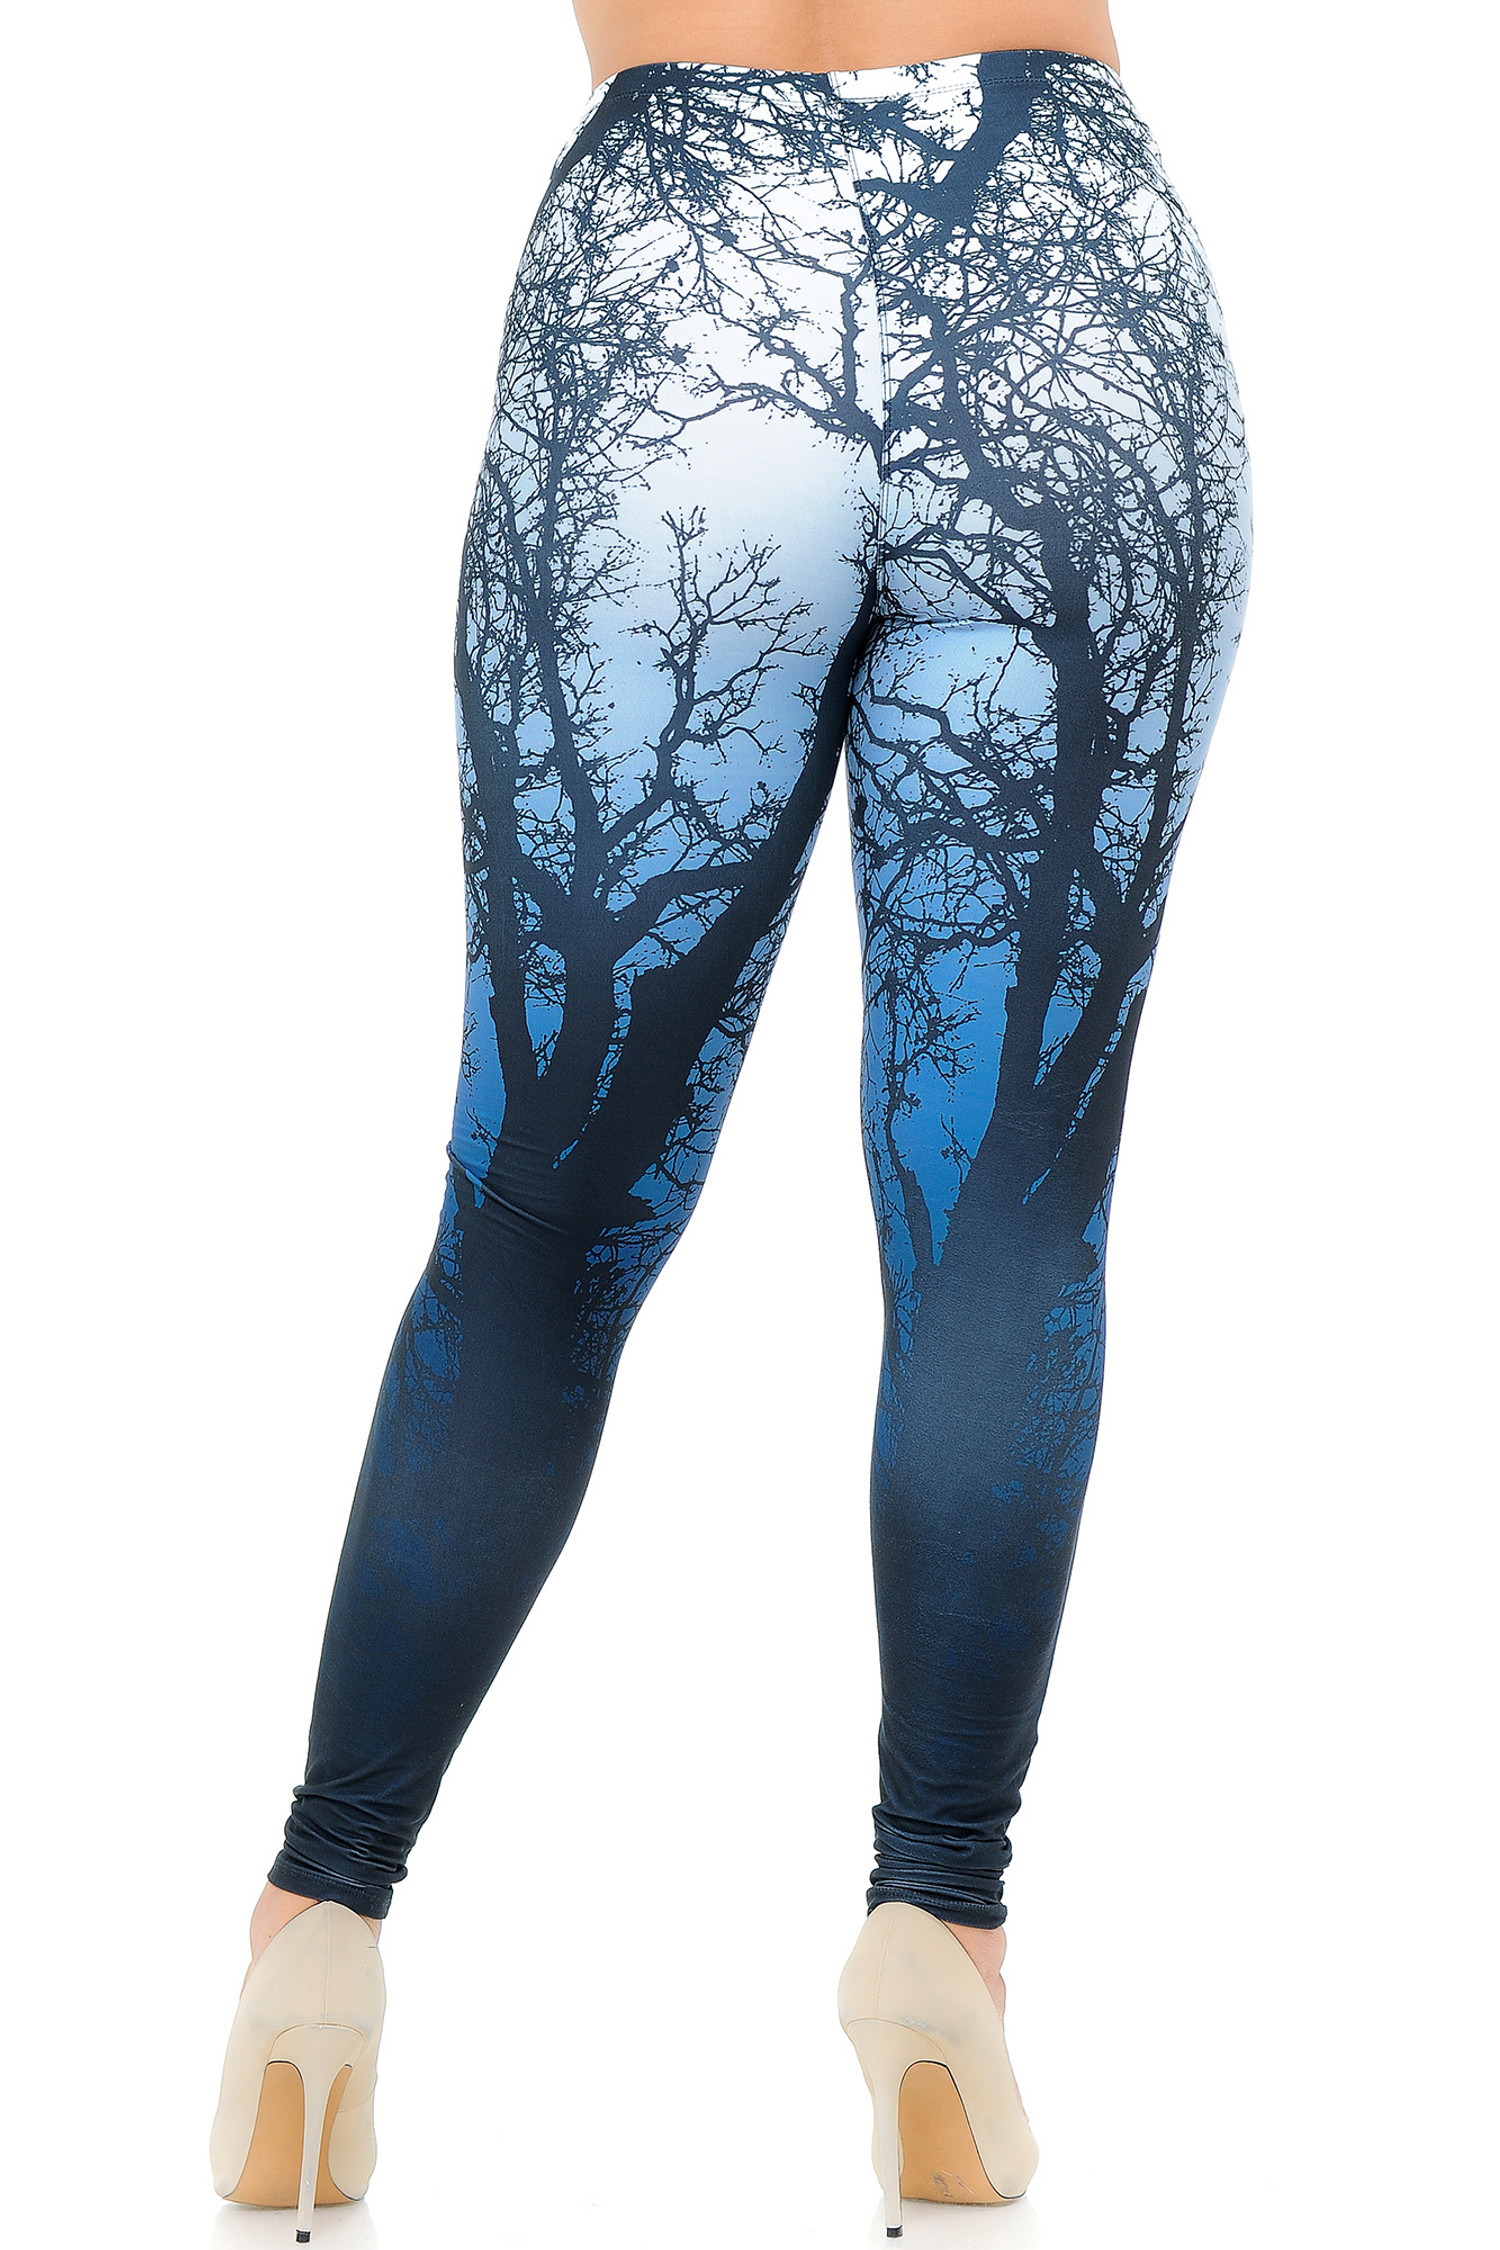 Creamy Soft Ombre Forest Extra Plus Size Leggings - 3X-5X - USA Fashion™